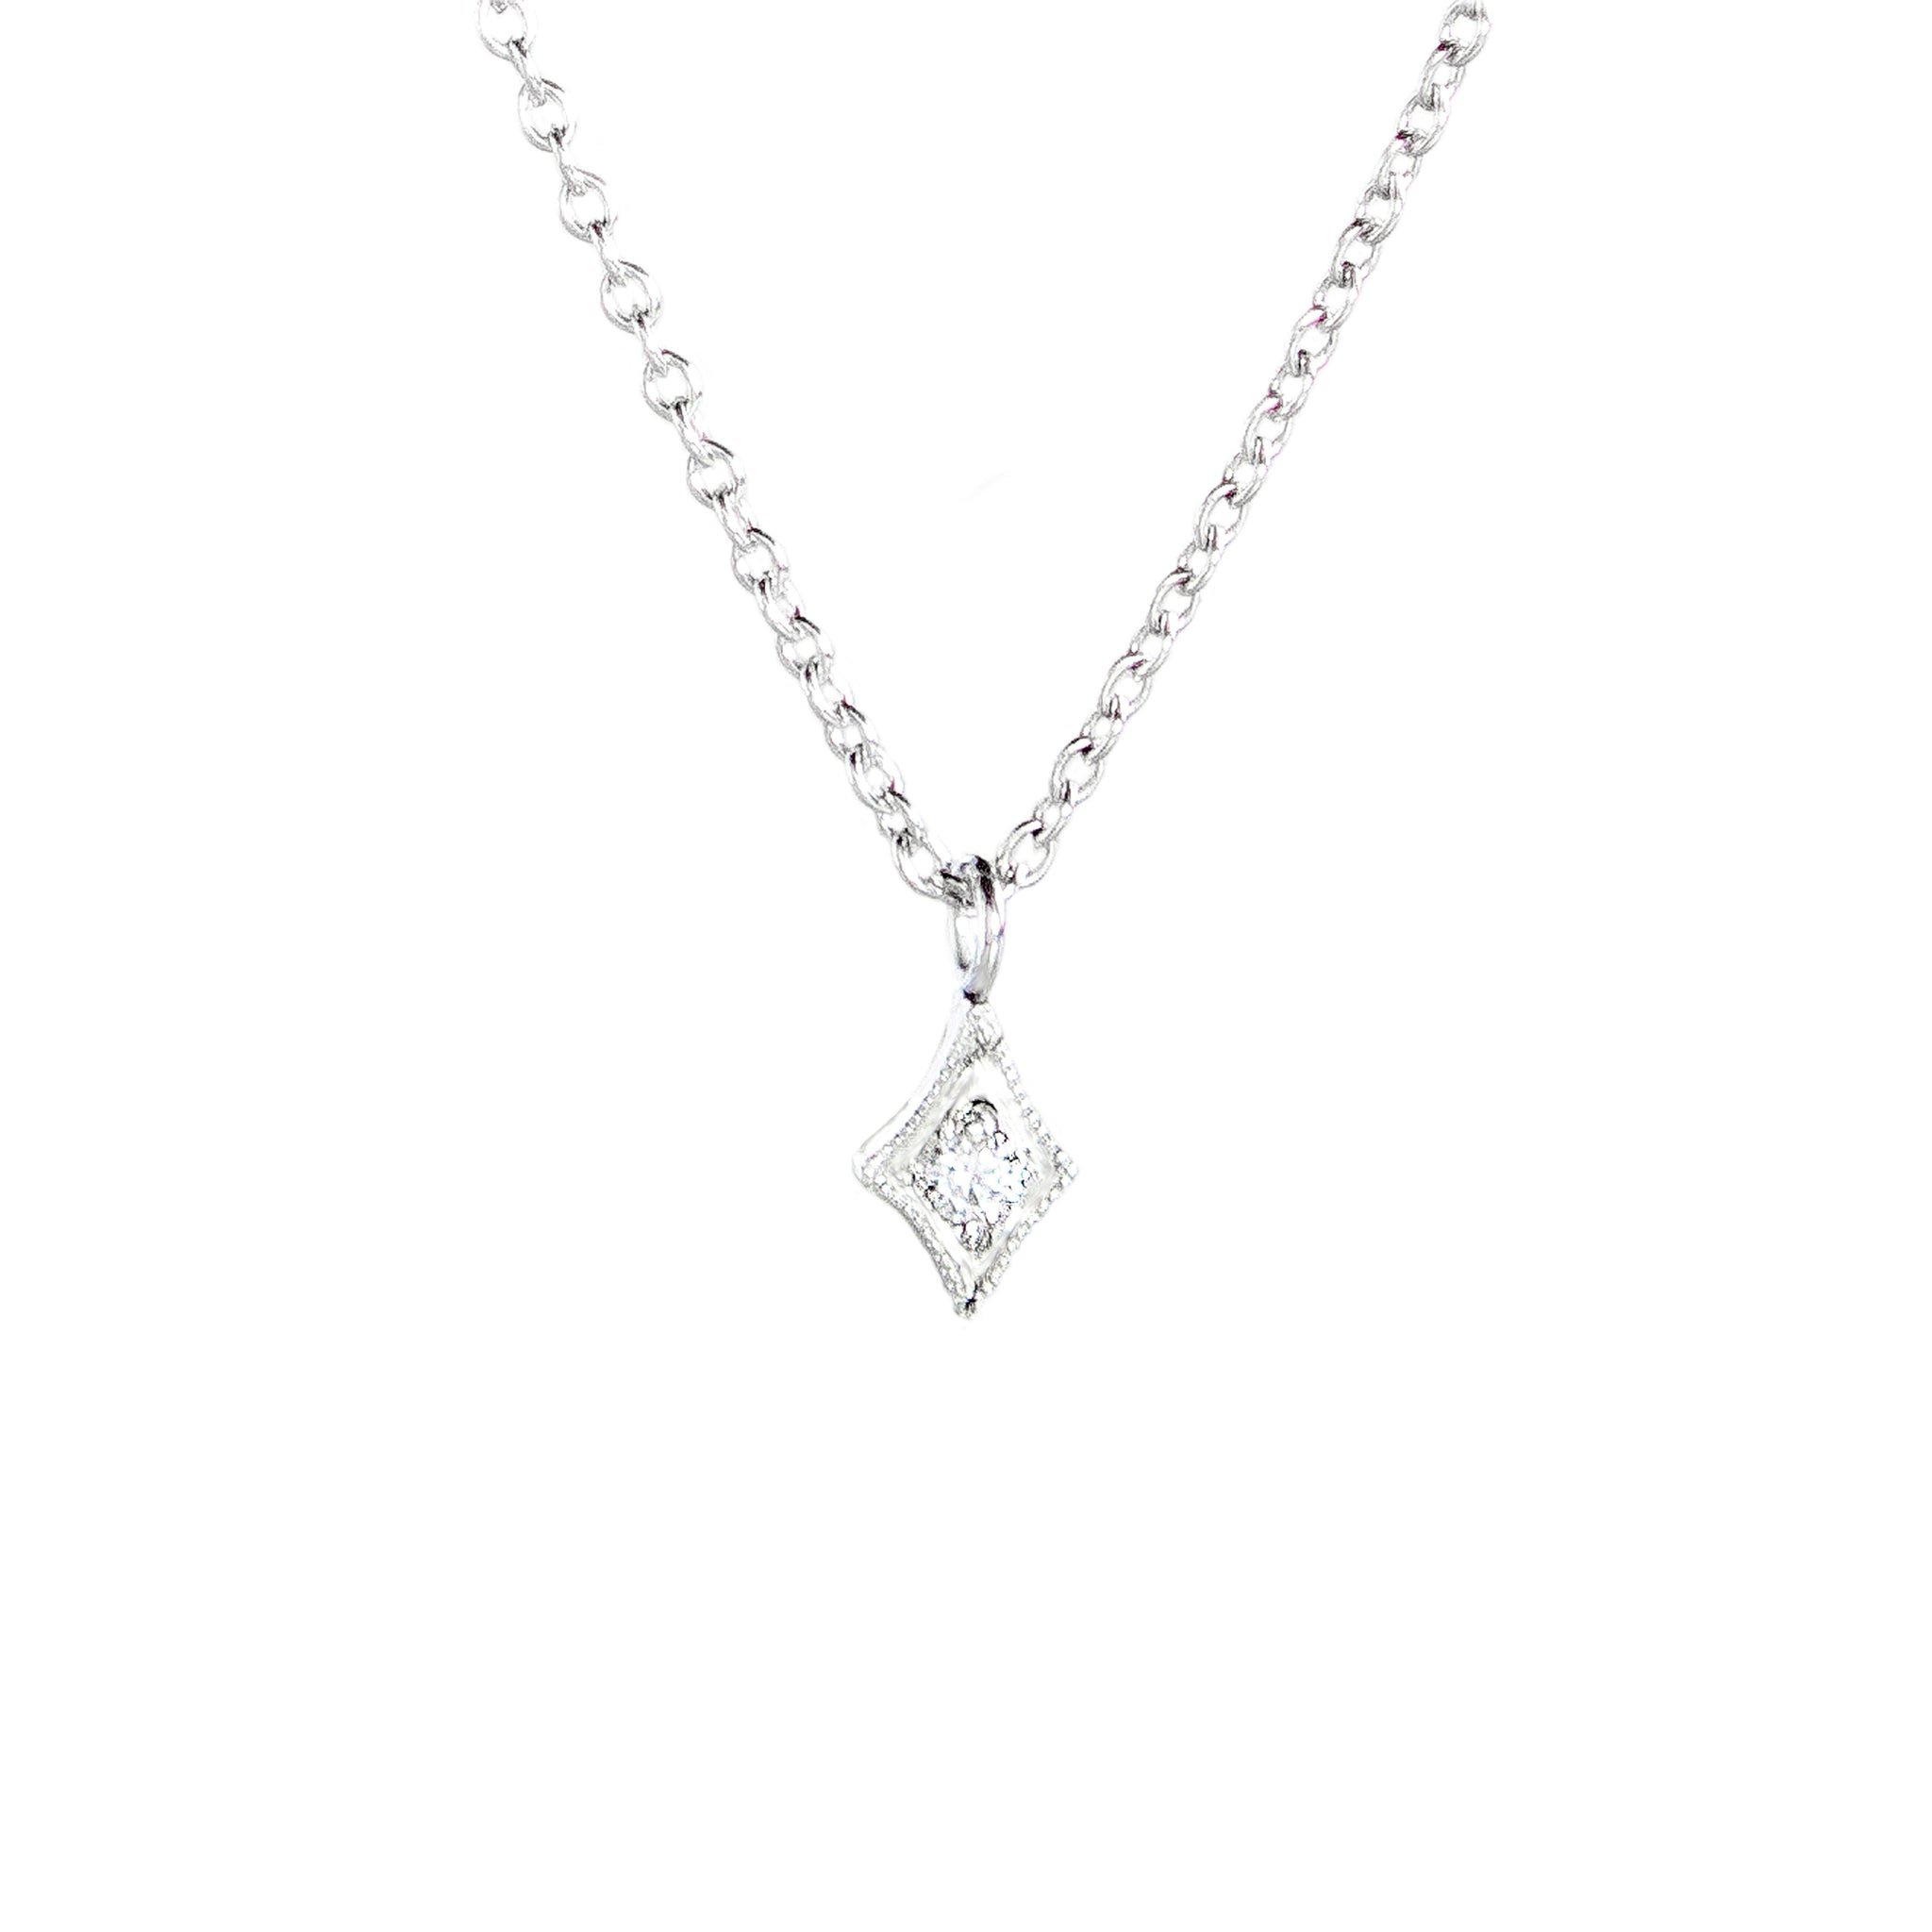 Santuari Diamond Teardrop Necklace